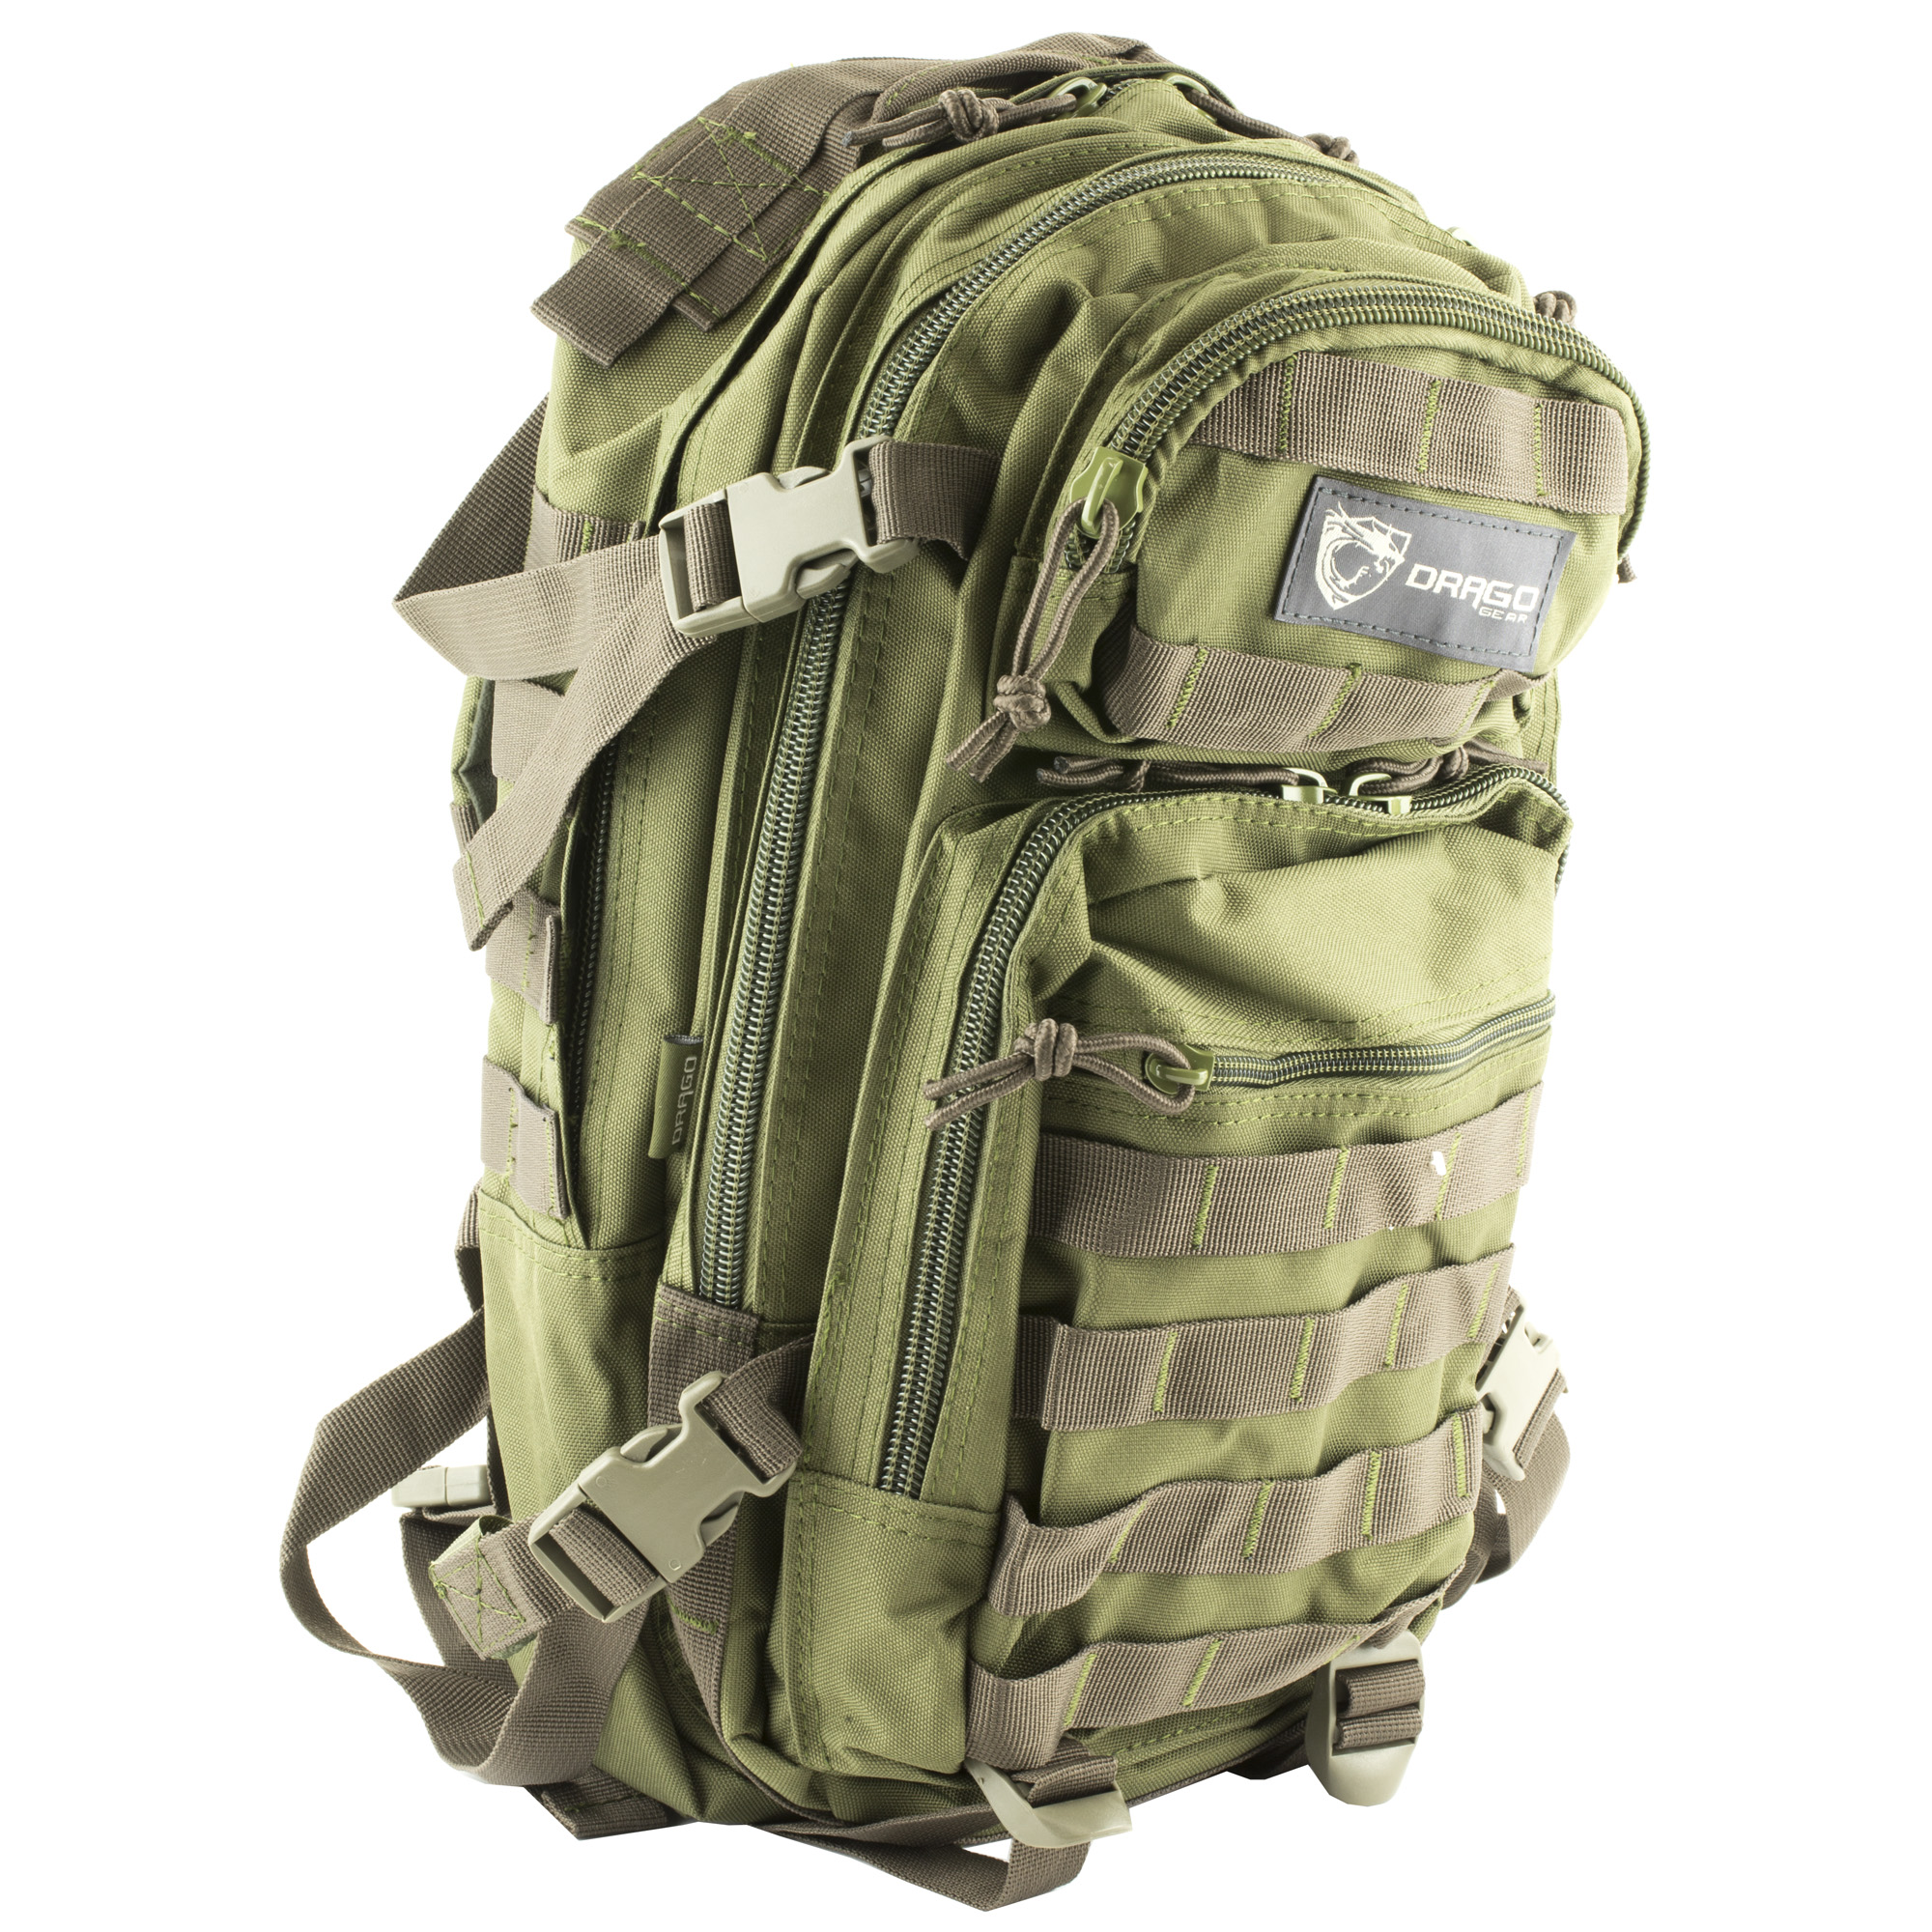 GEAR SCOUT BACKPACK GREEN